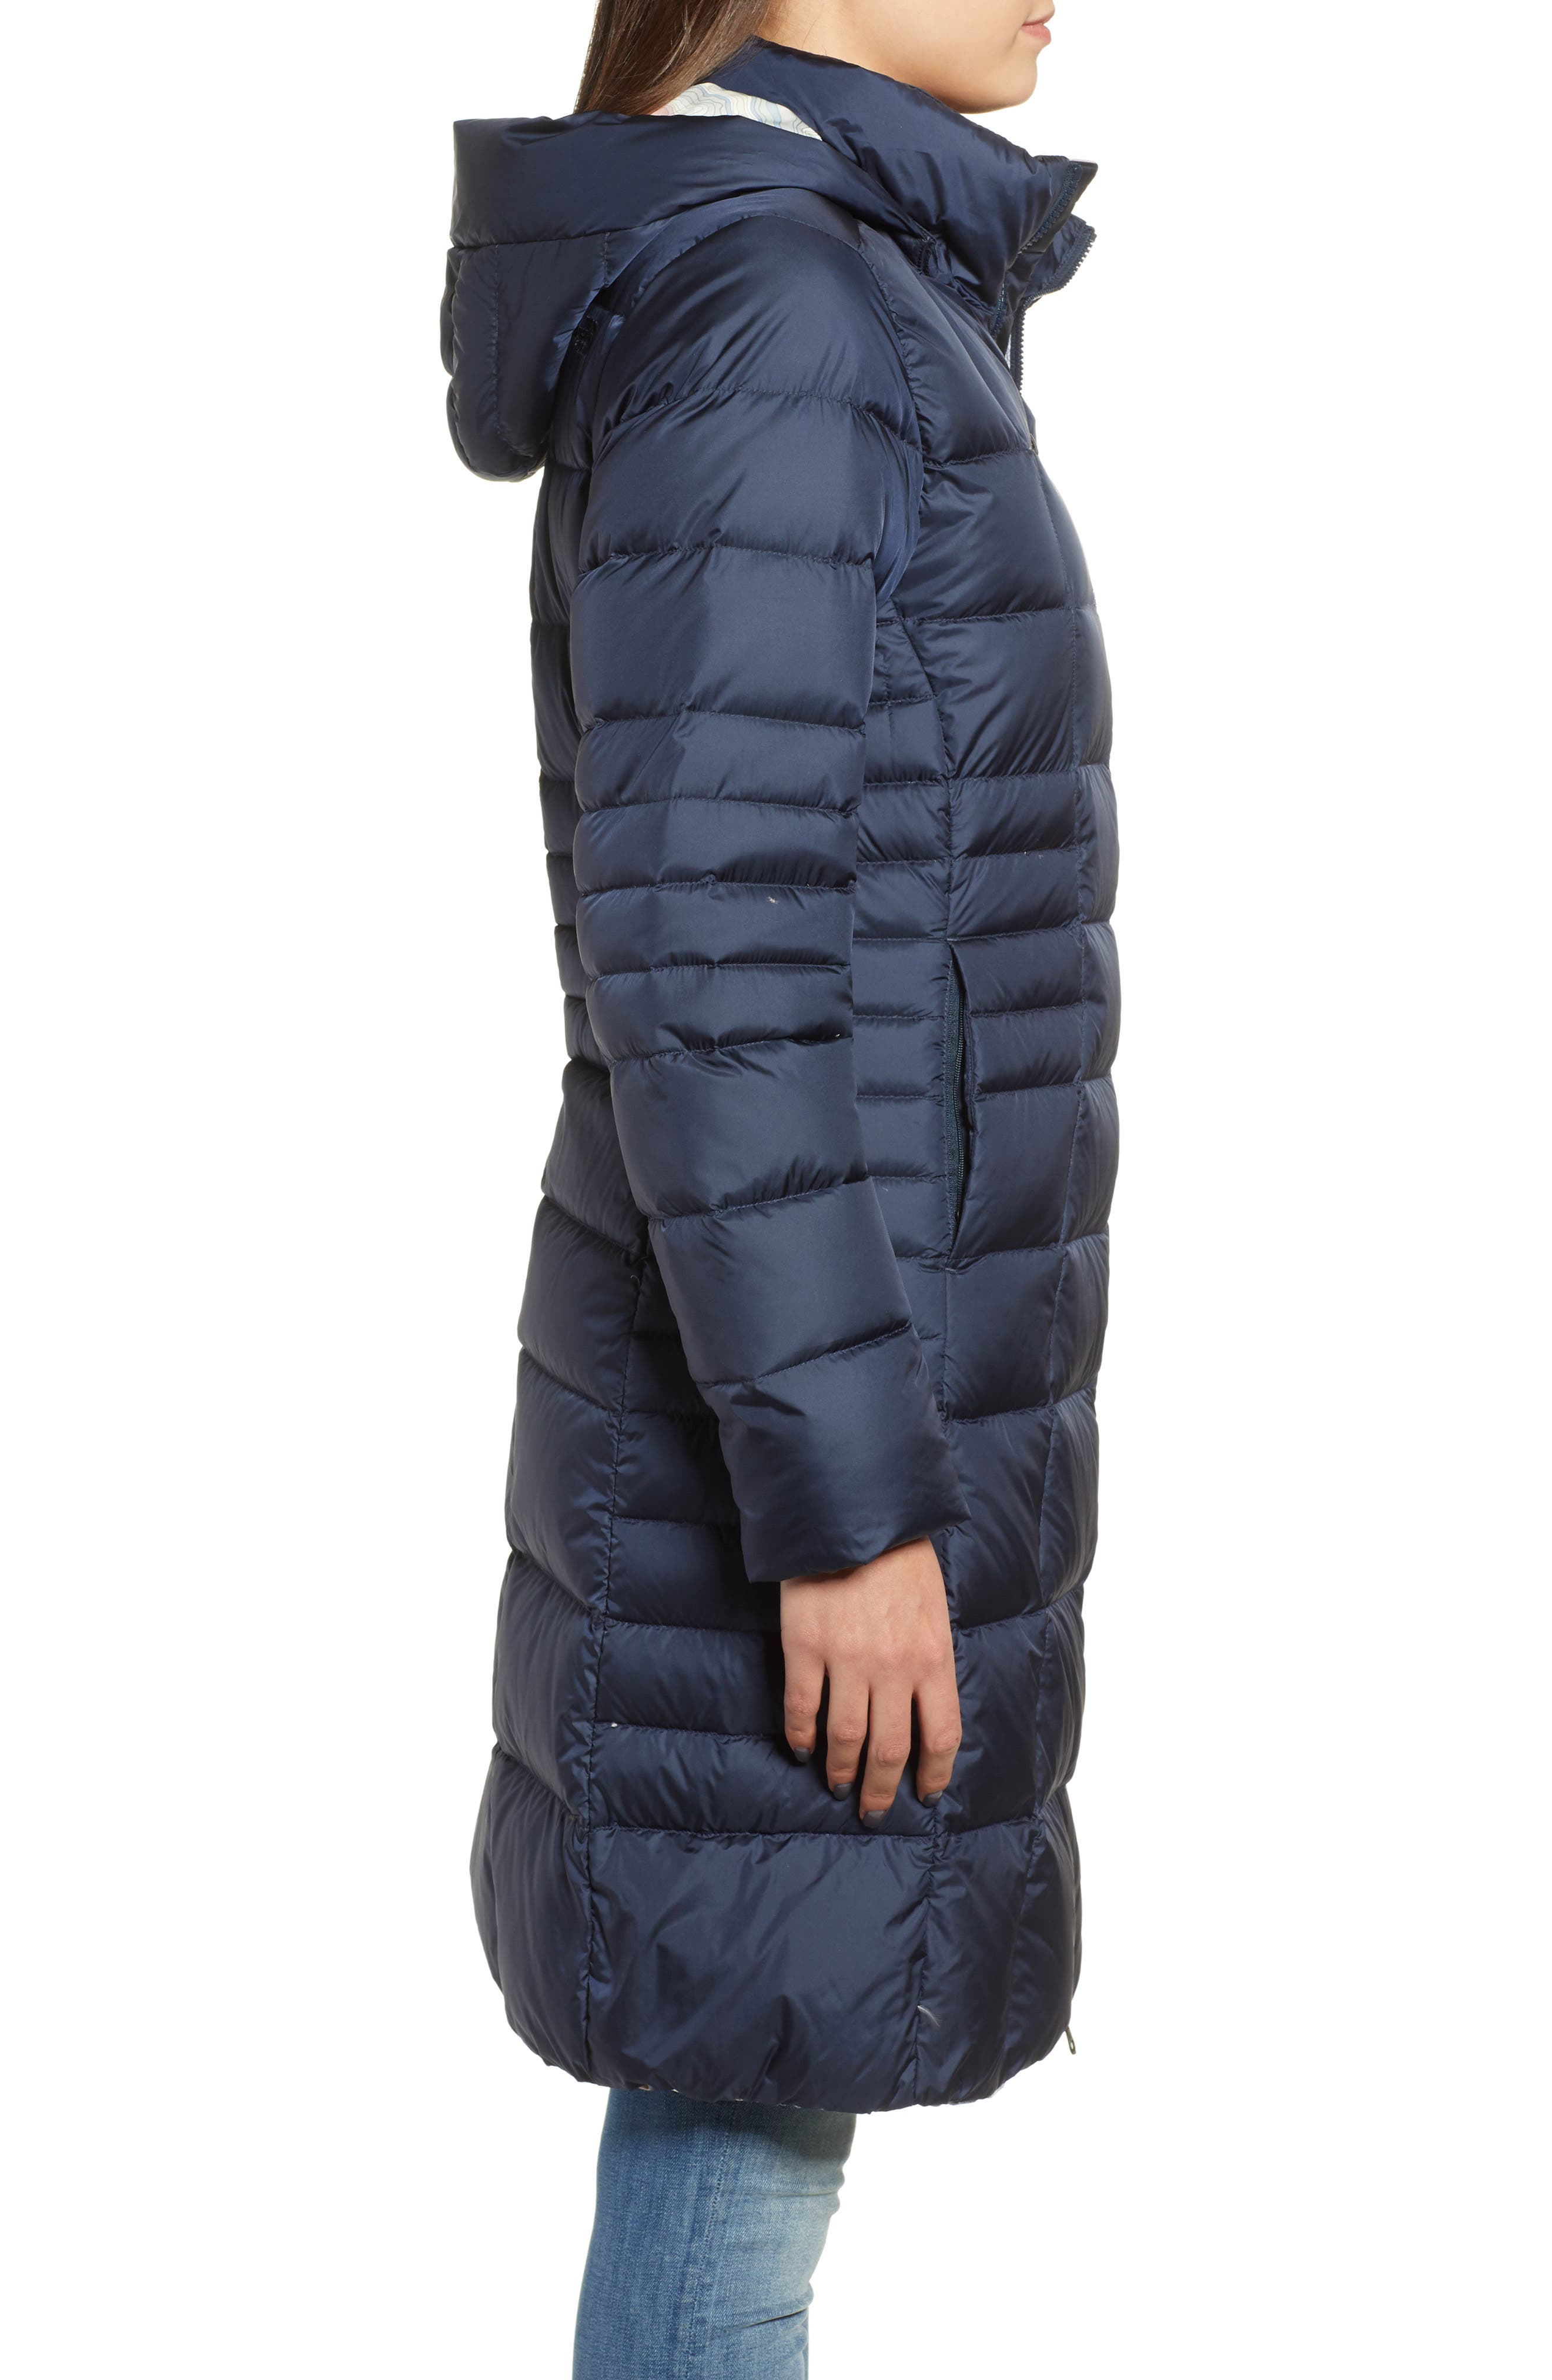 THE NORTH FACE, Metropolis II Hooded Water Resistant Down Parka, Alternate thumbnail 4, color, URBAN NAVY/ MULTI TOPO PRINT